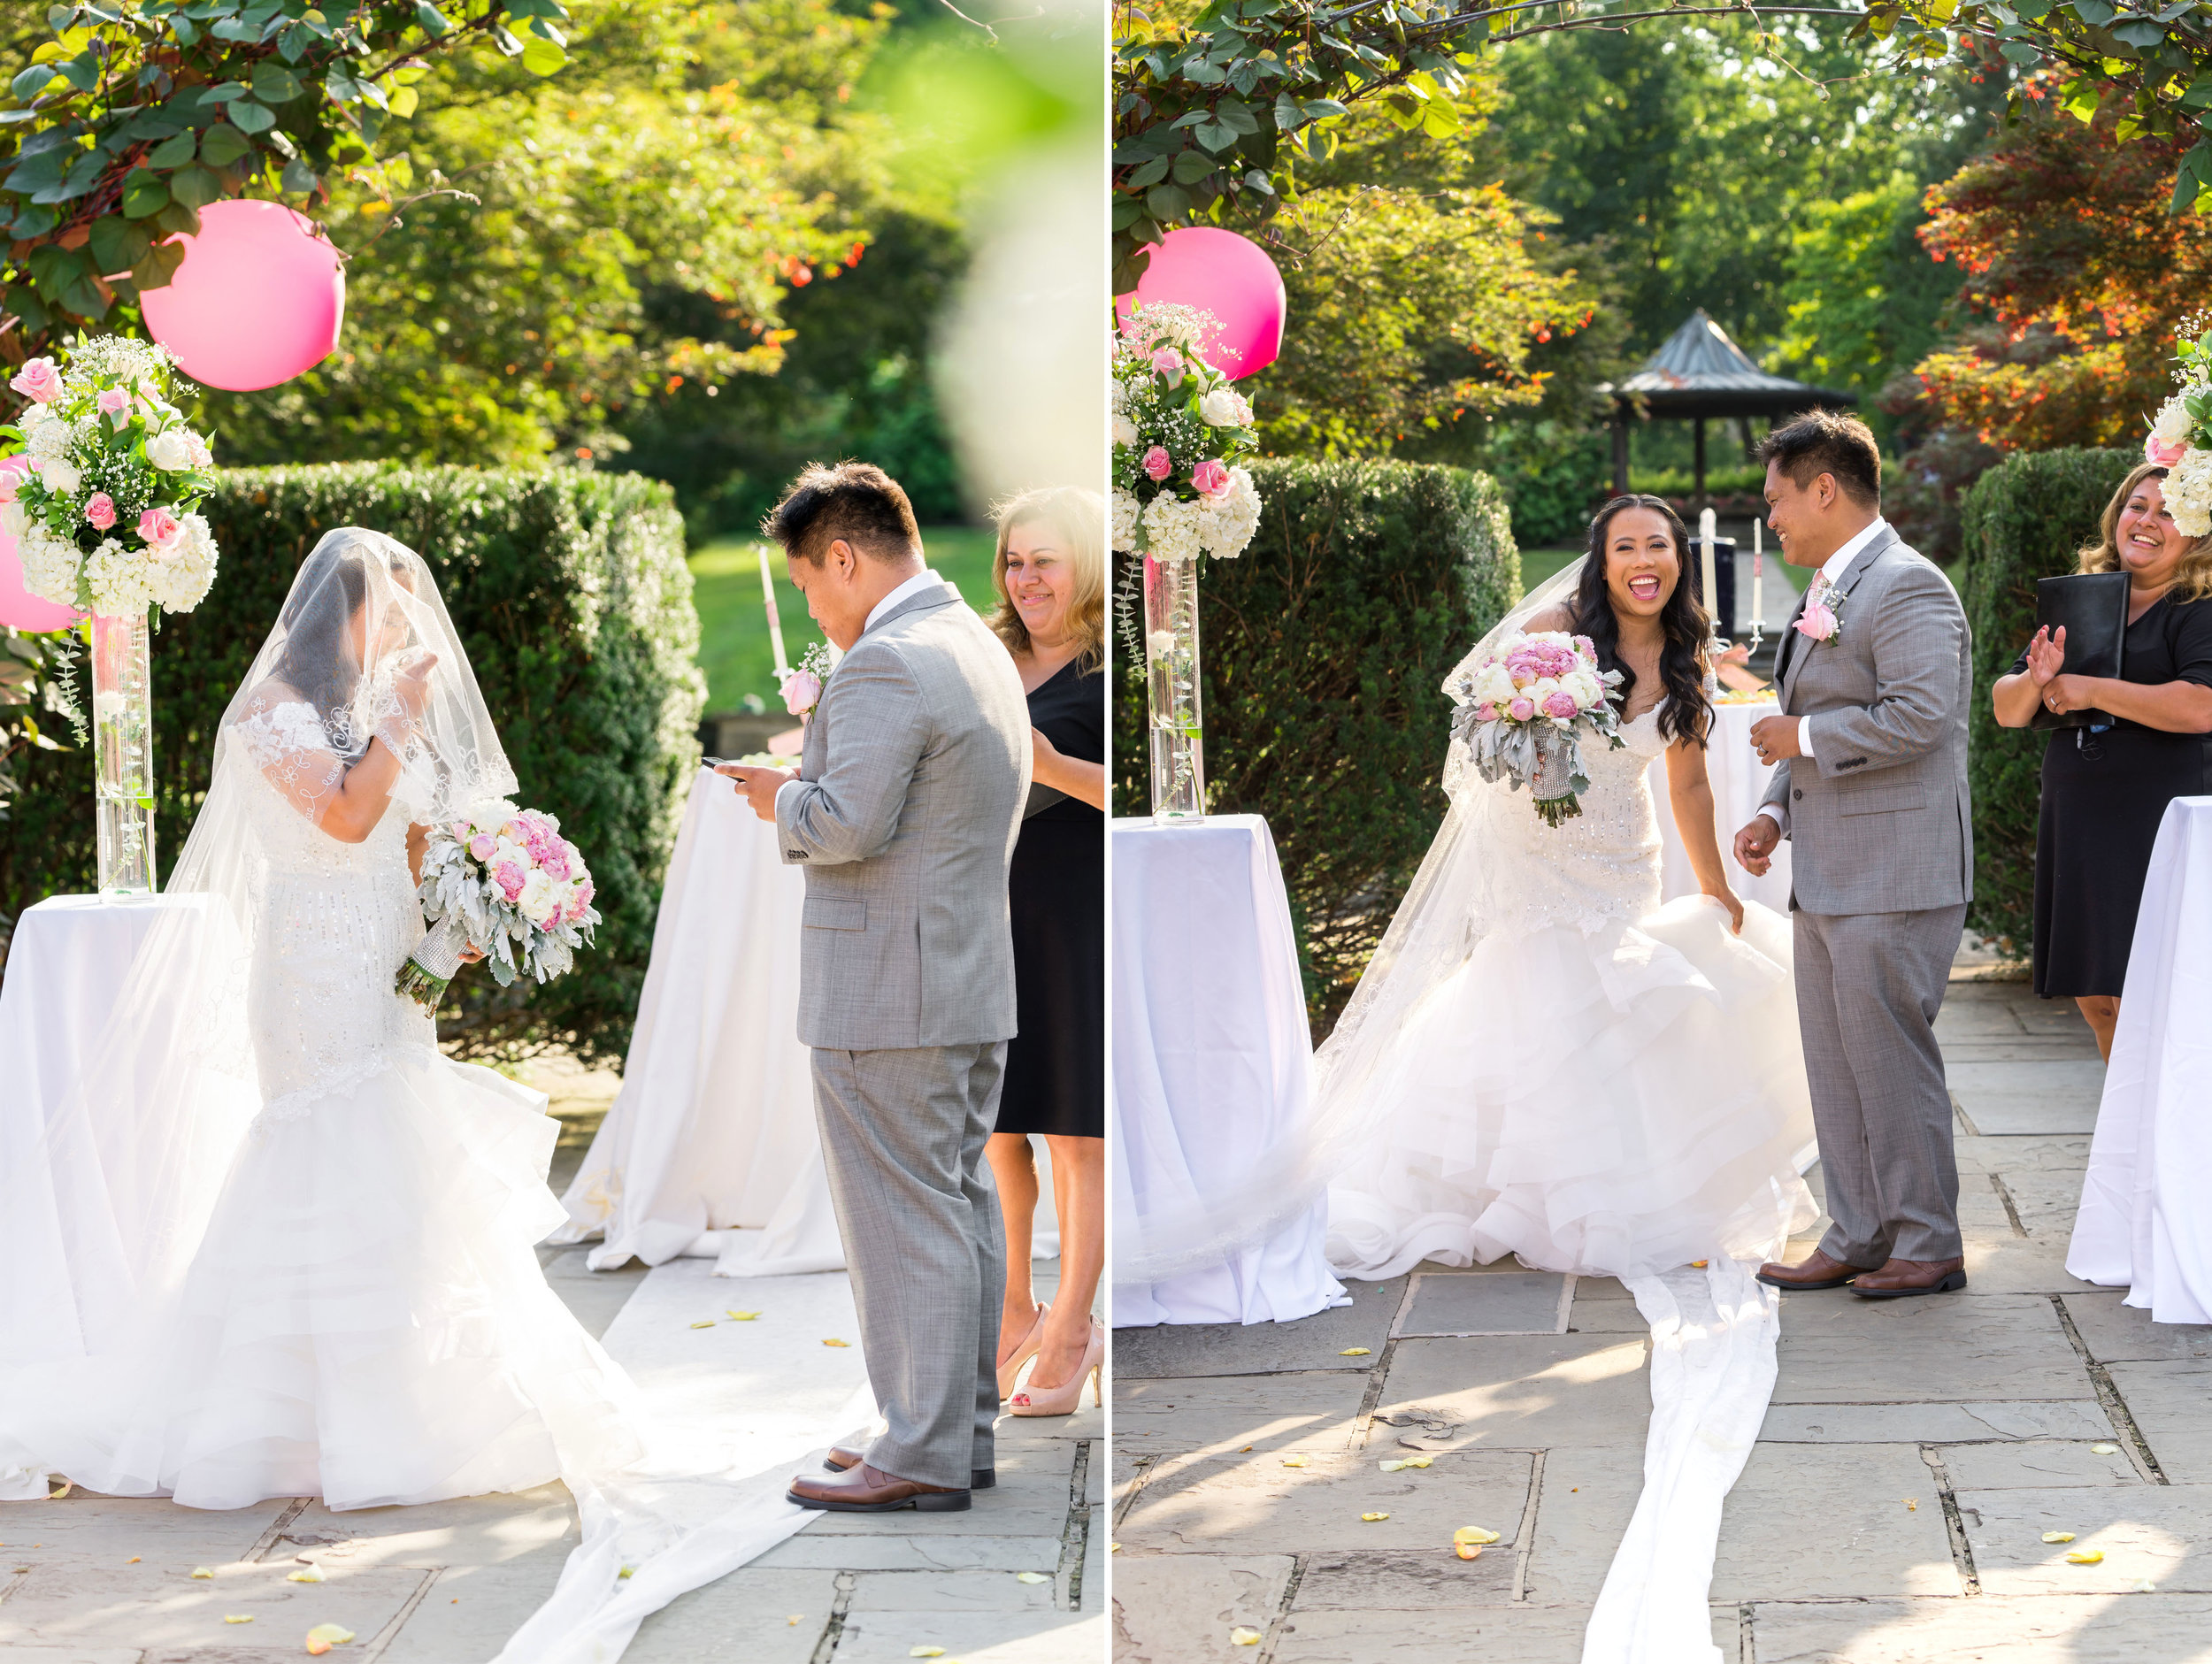 Bride and groom wedding photos at Brookside